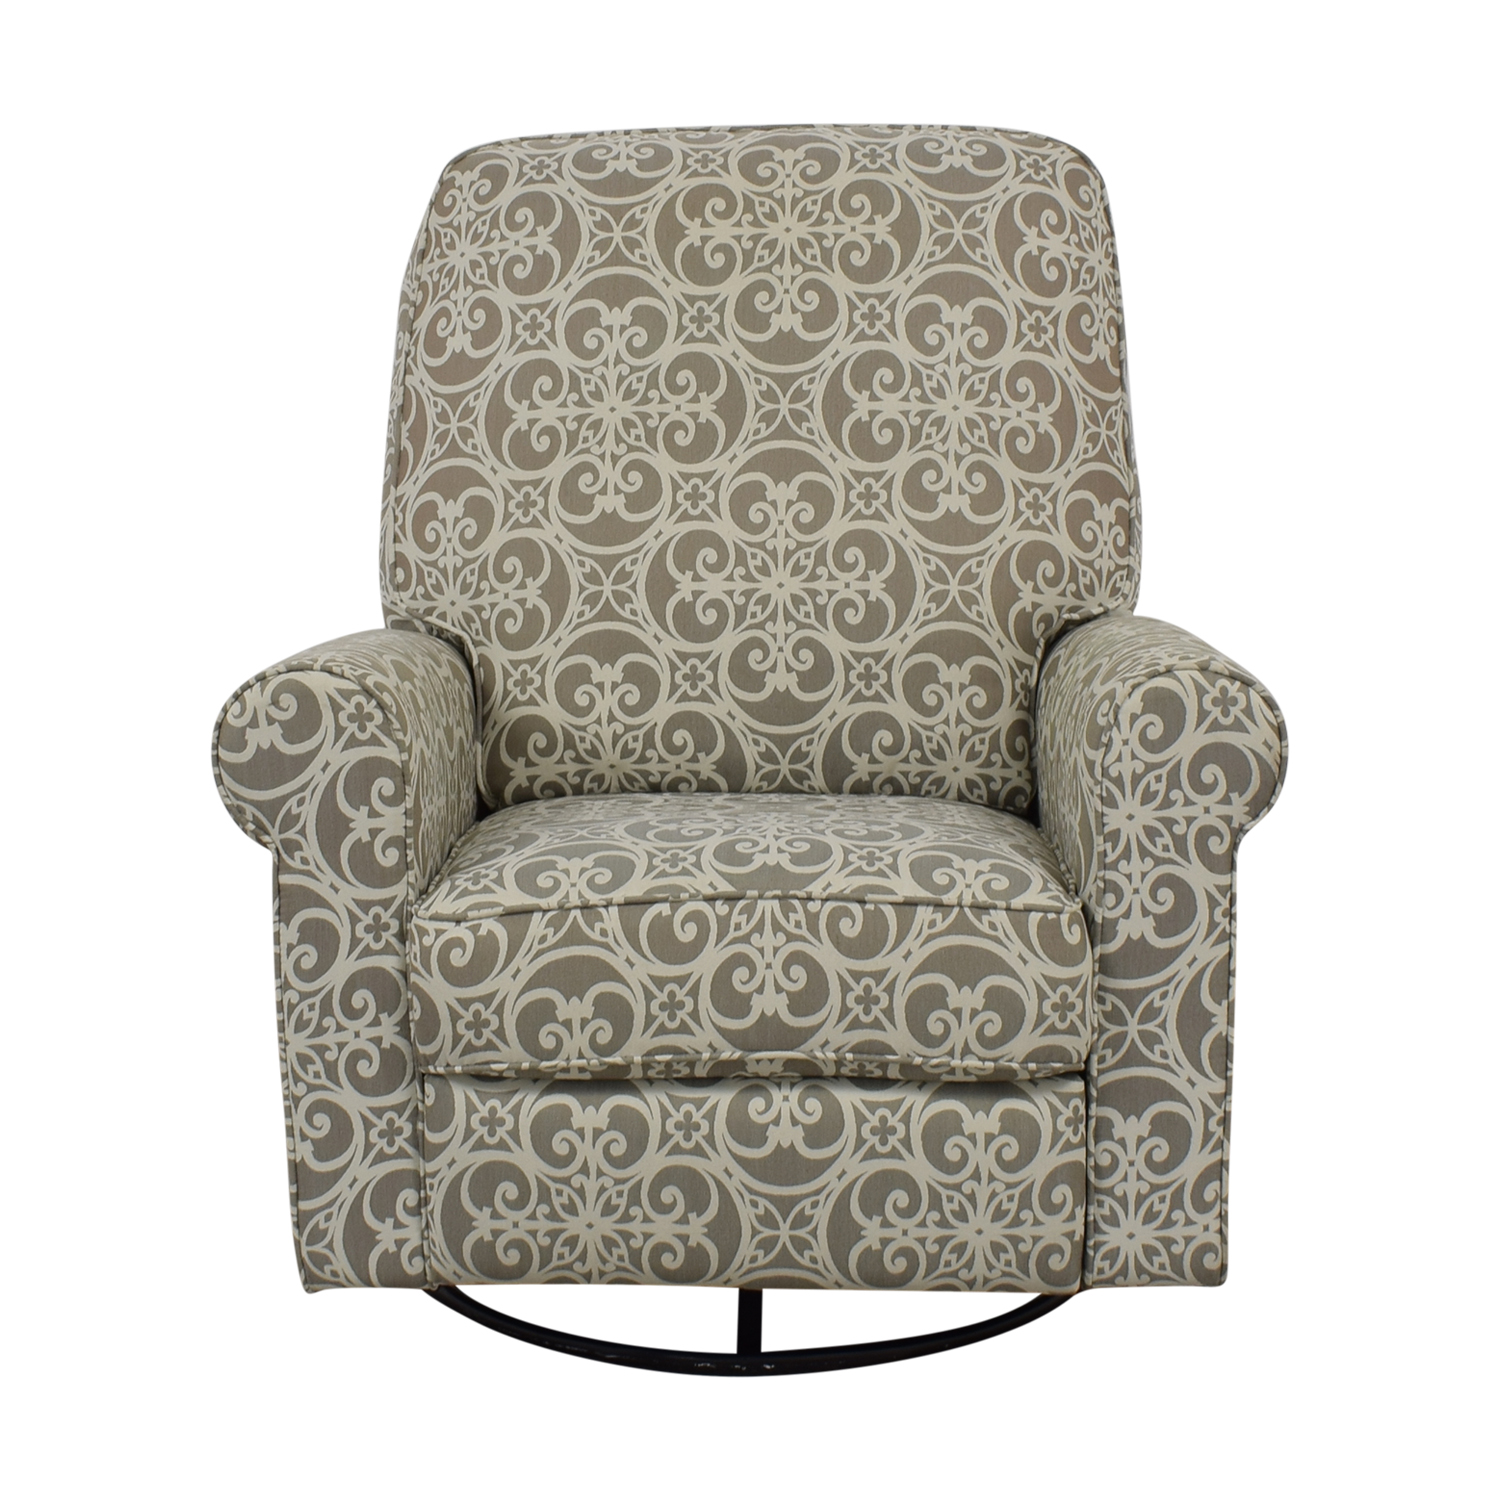 Stupendous 88 Off Abbyson Abbyson Living Grey And White Swivel Glider Rocking Chair Chairs Unemploymentrelief Wooden Chair Designs For Living Room Unemploymentrelieforg